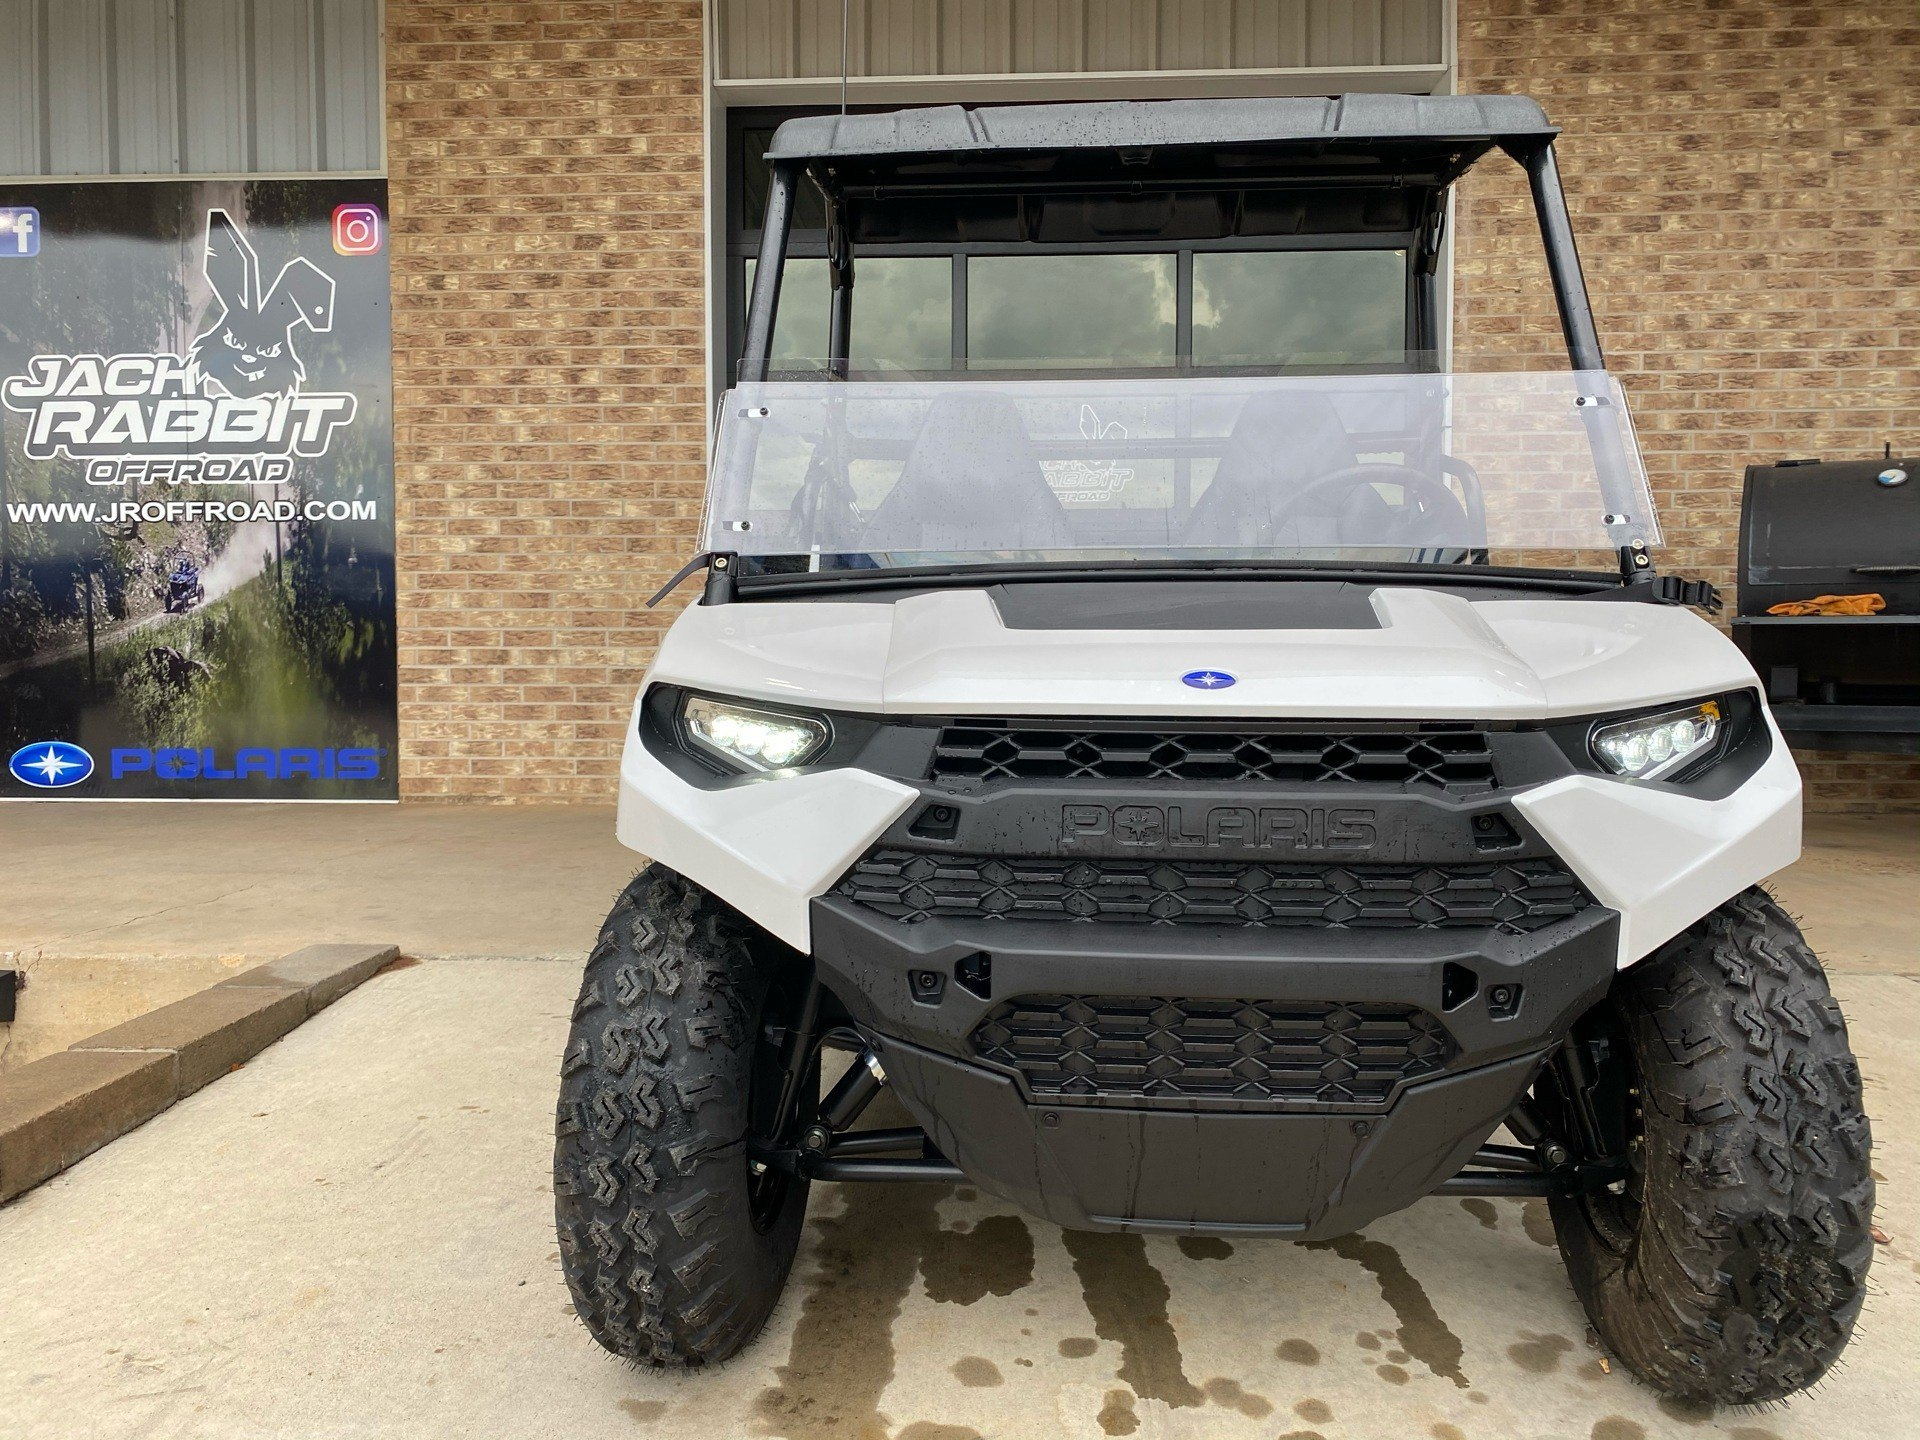 2020 Polaris Ranger 150 EFI in Marshall, Texas - Photo 7